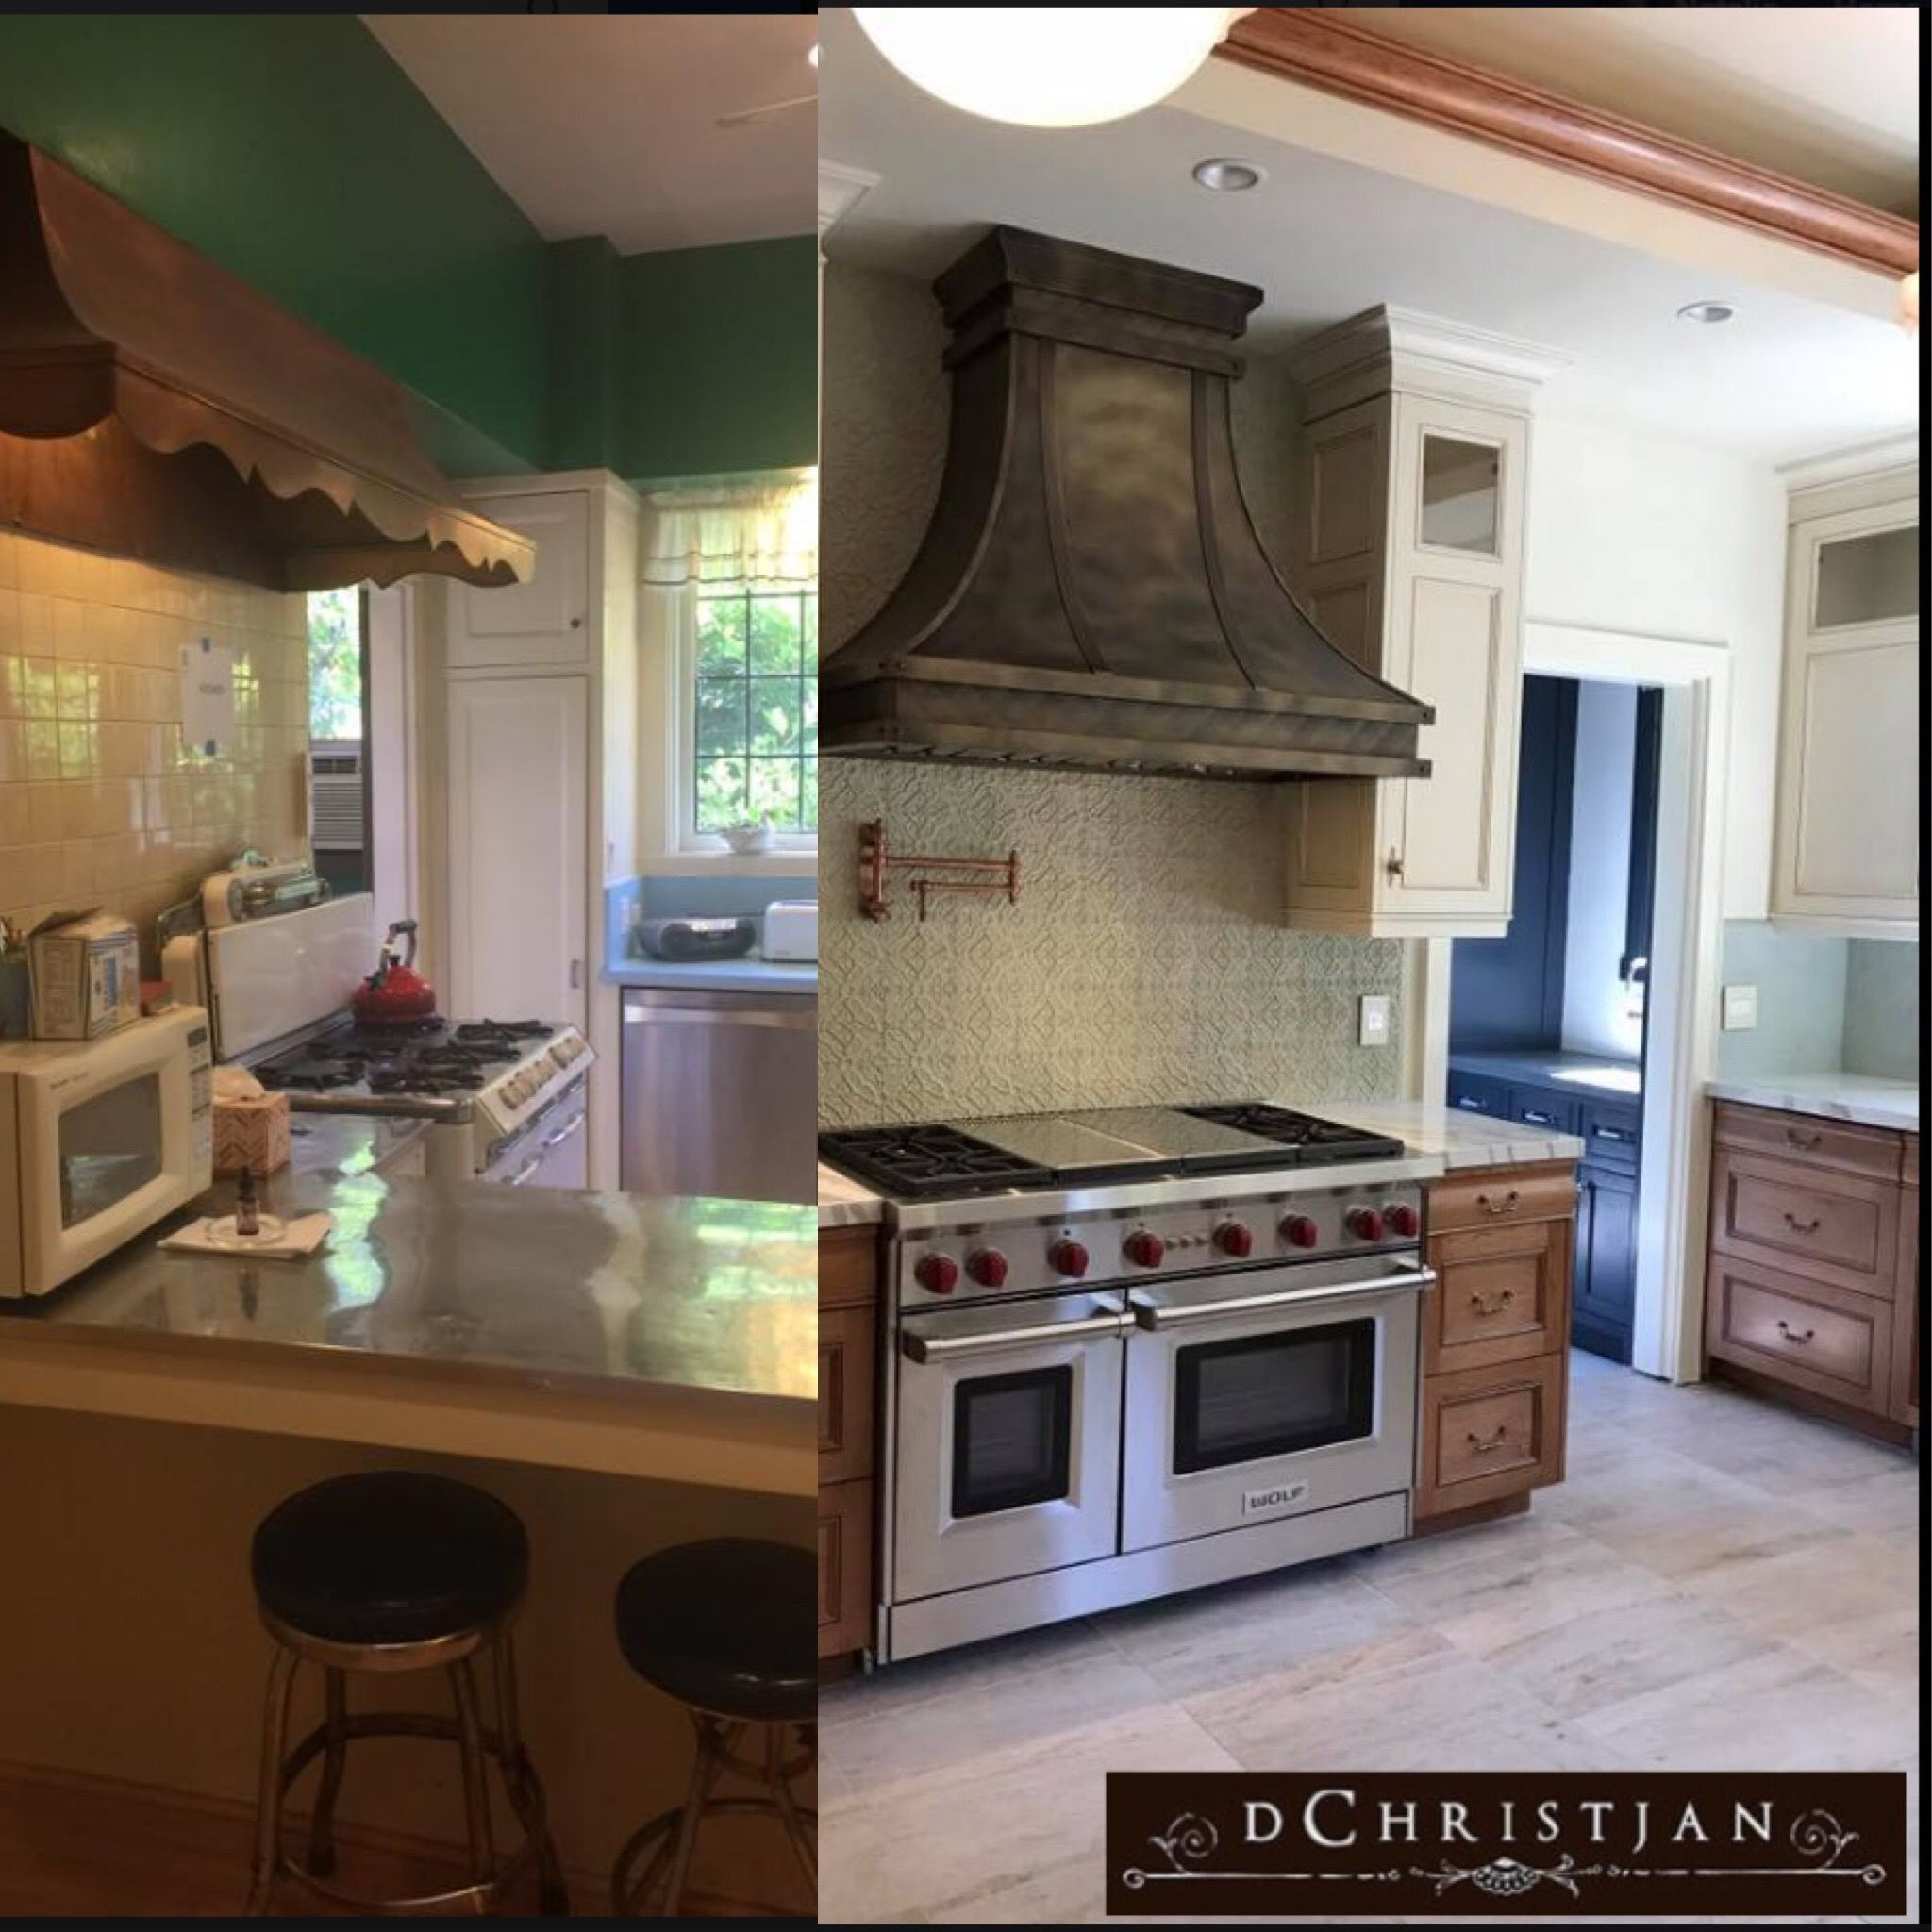 Check out this before and after shot from the 2017 ...